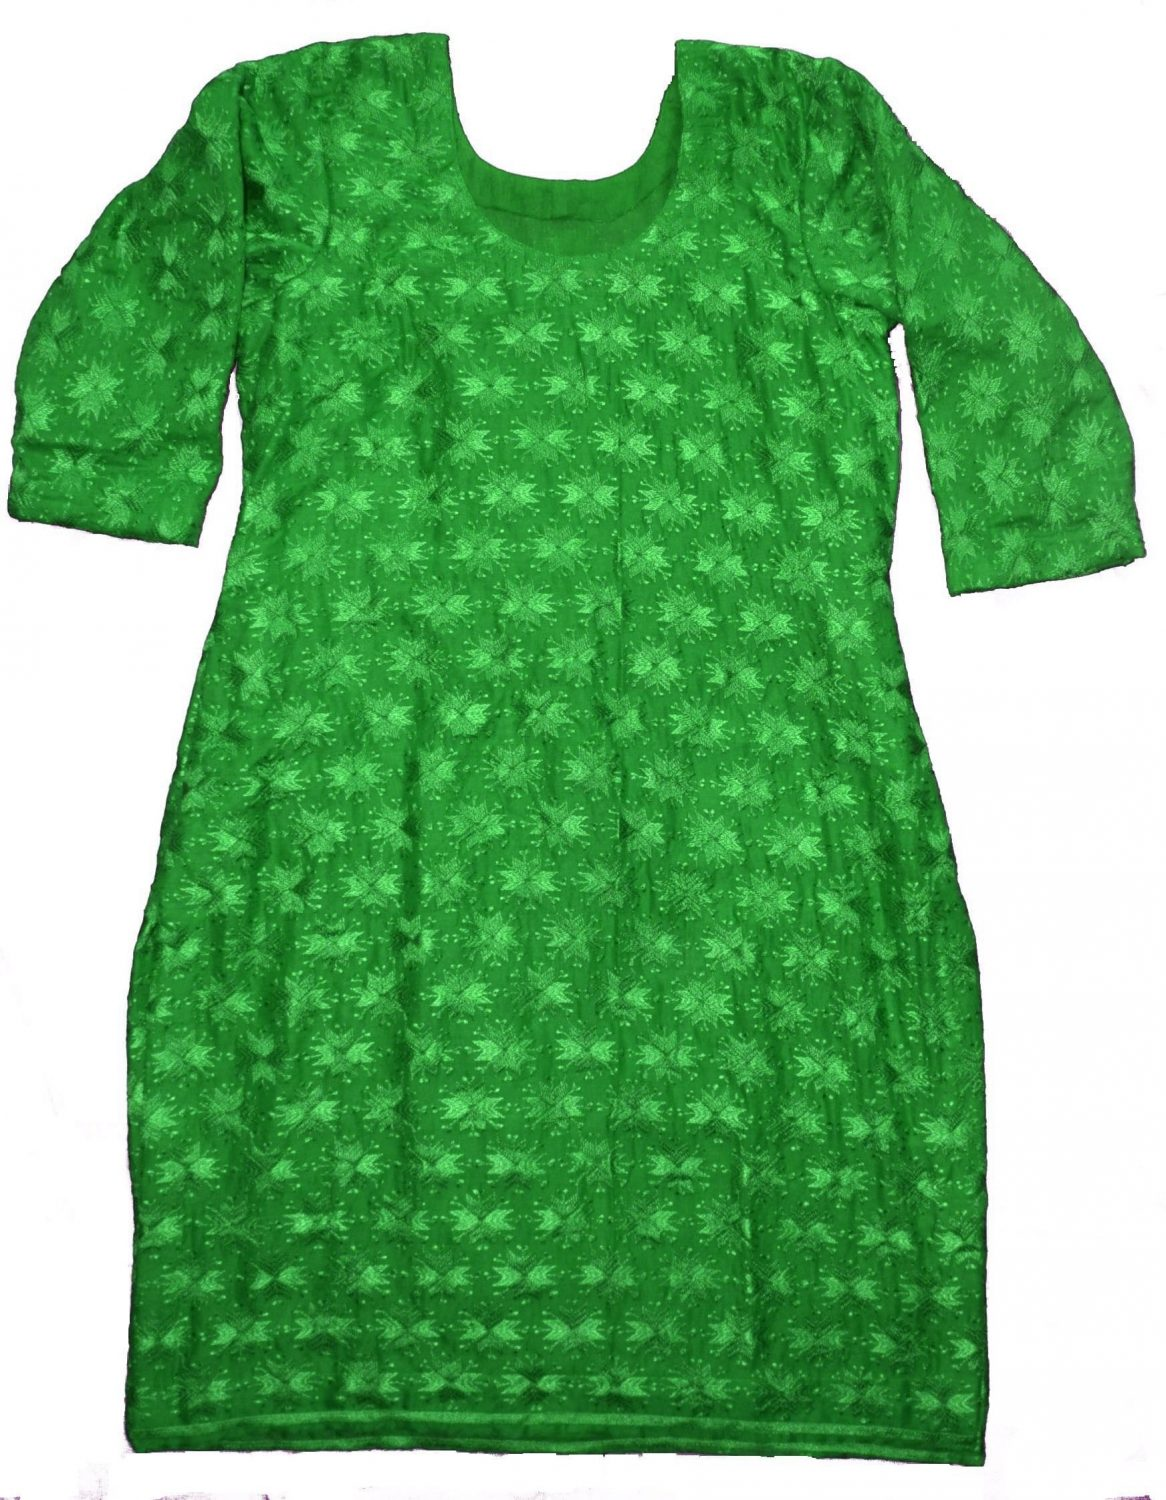 Self Embroidered Phulkari Kurti Custom Stitched - All Colours/Sizes Available 5